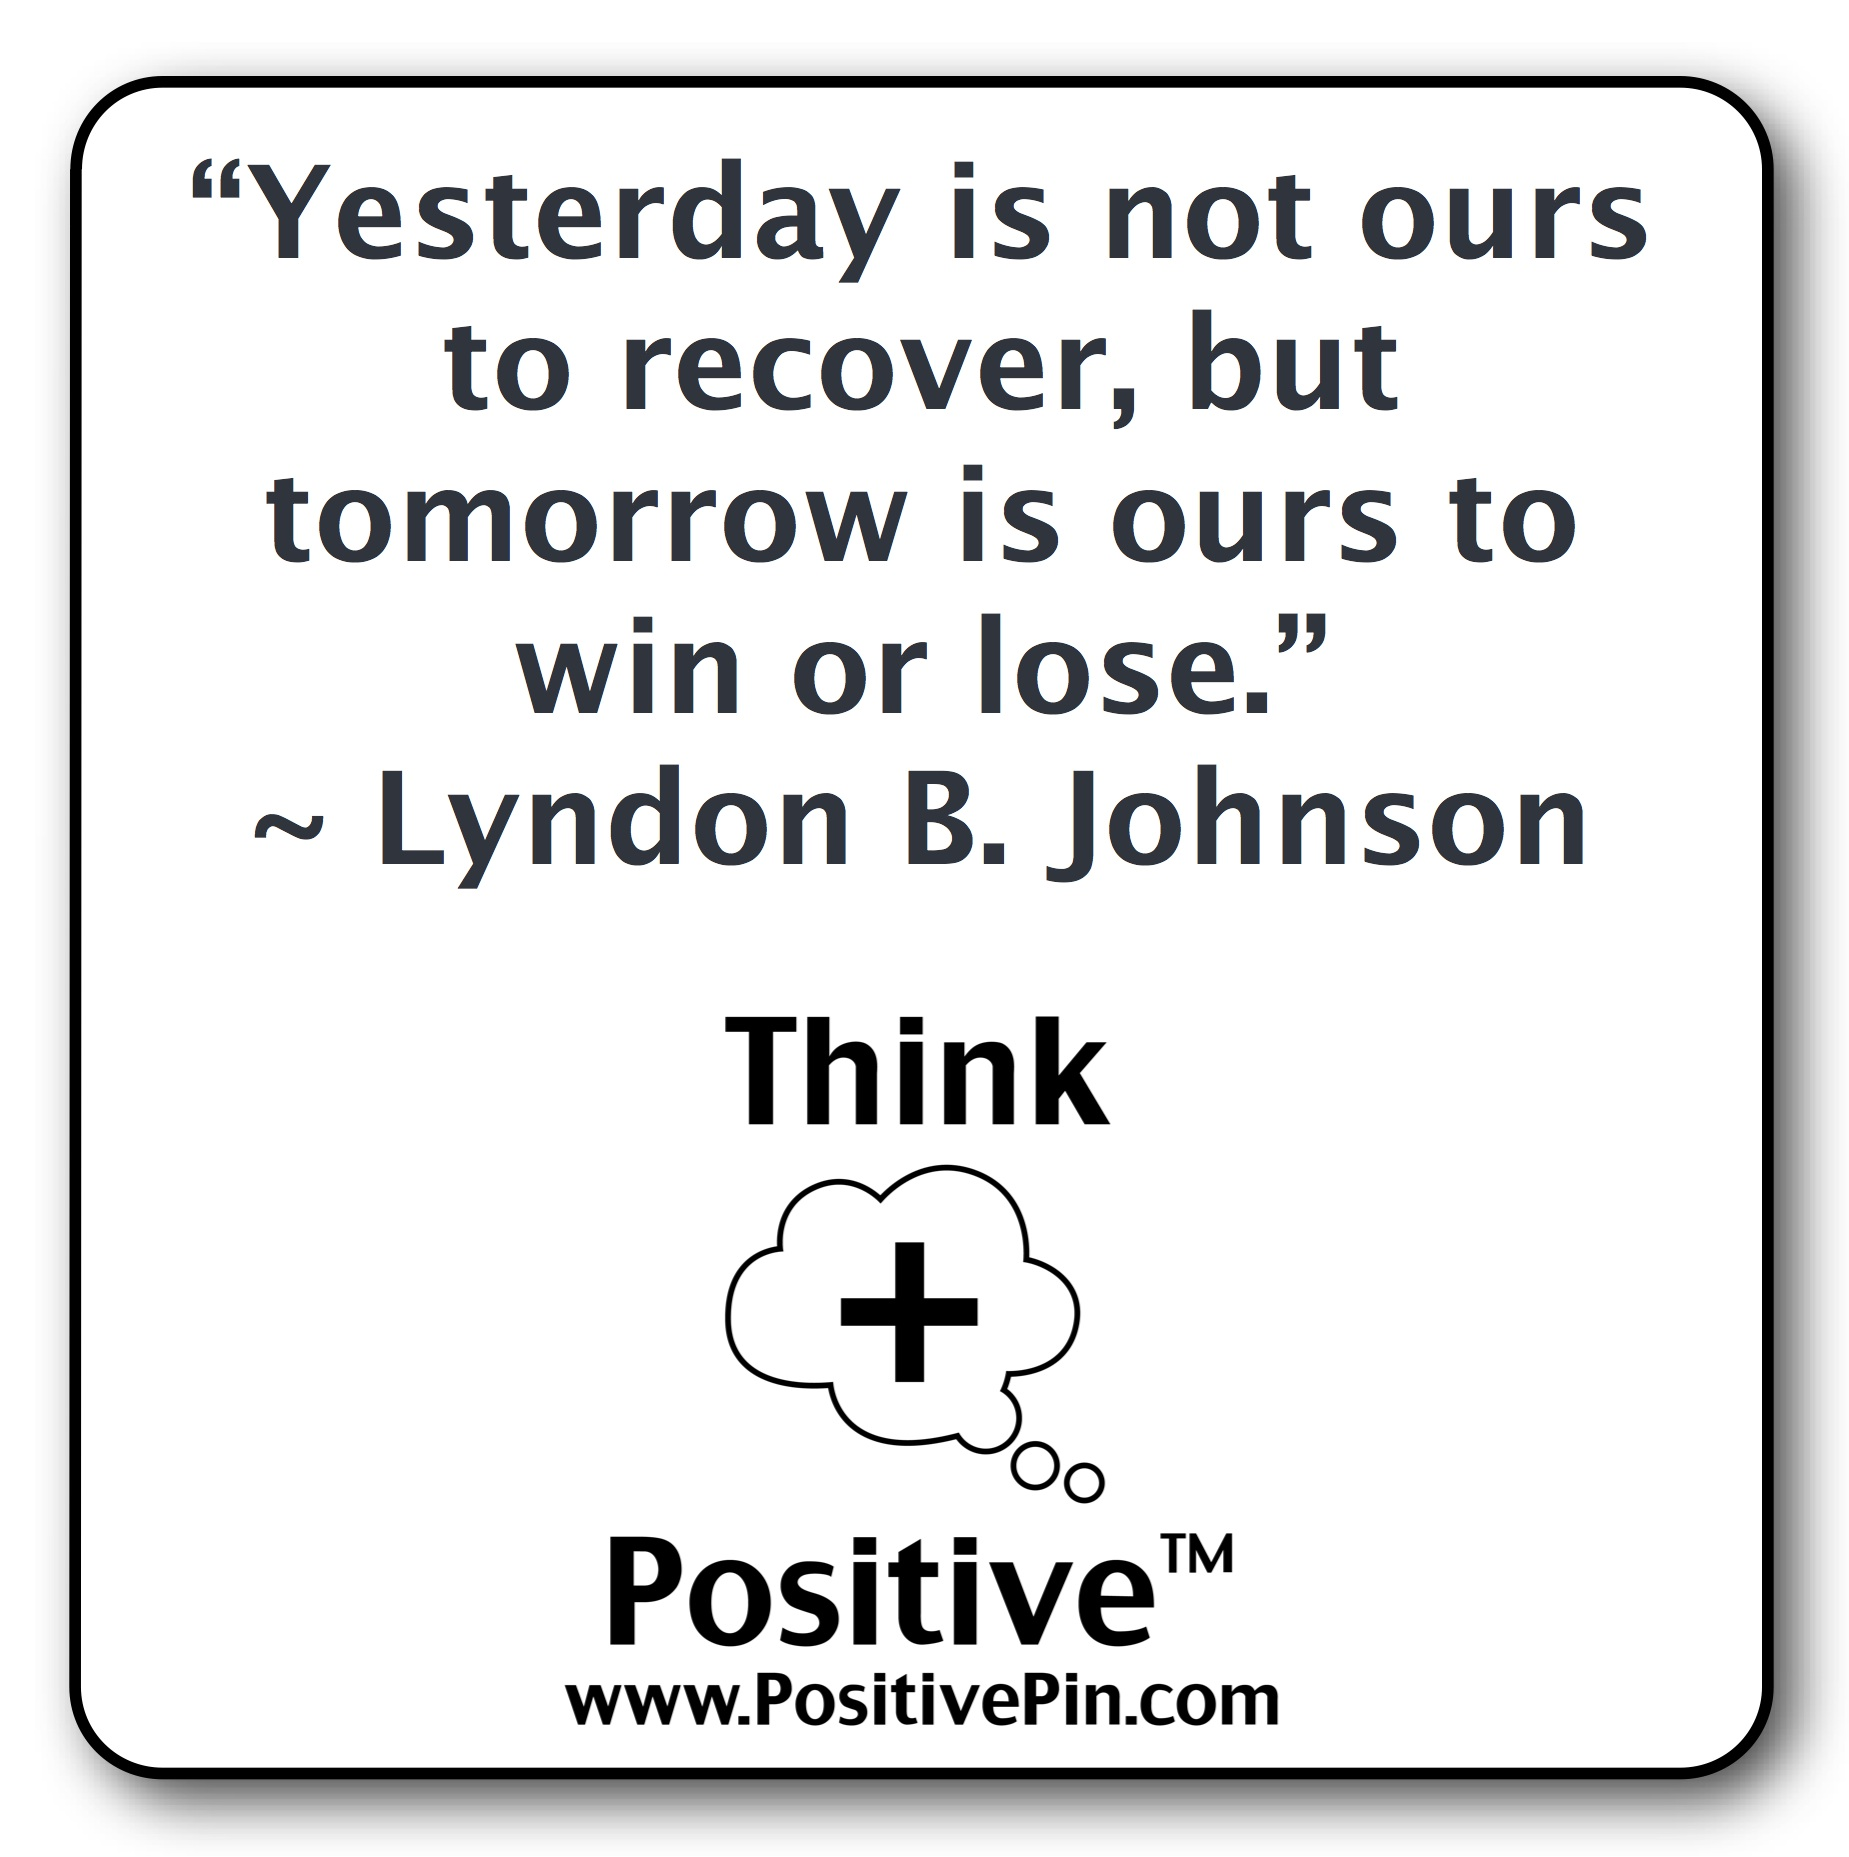 Quotes On Being Positive A Positive Future Loomsreading Positive Quotes